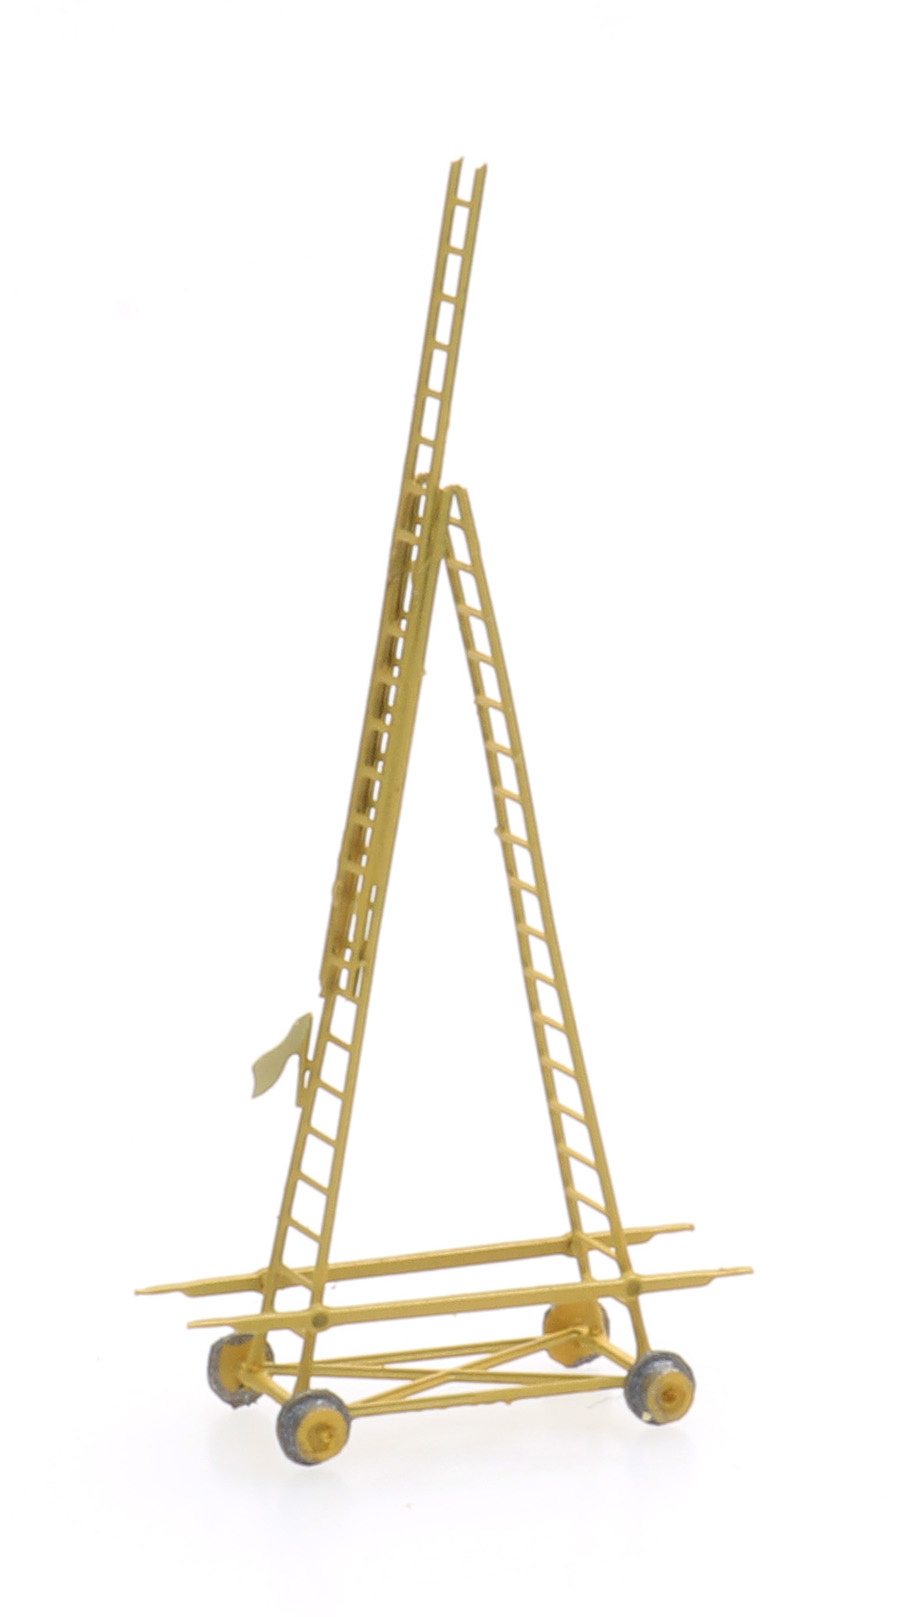 Lorry ladder catenary inspection